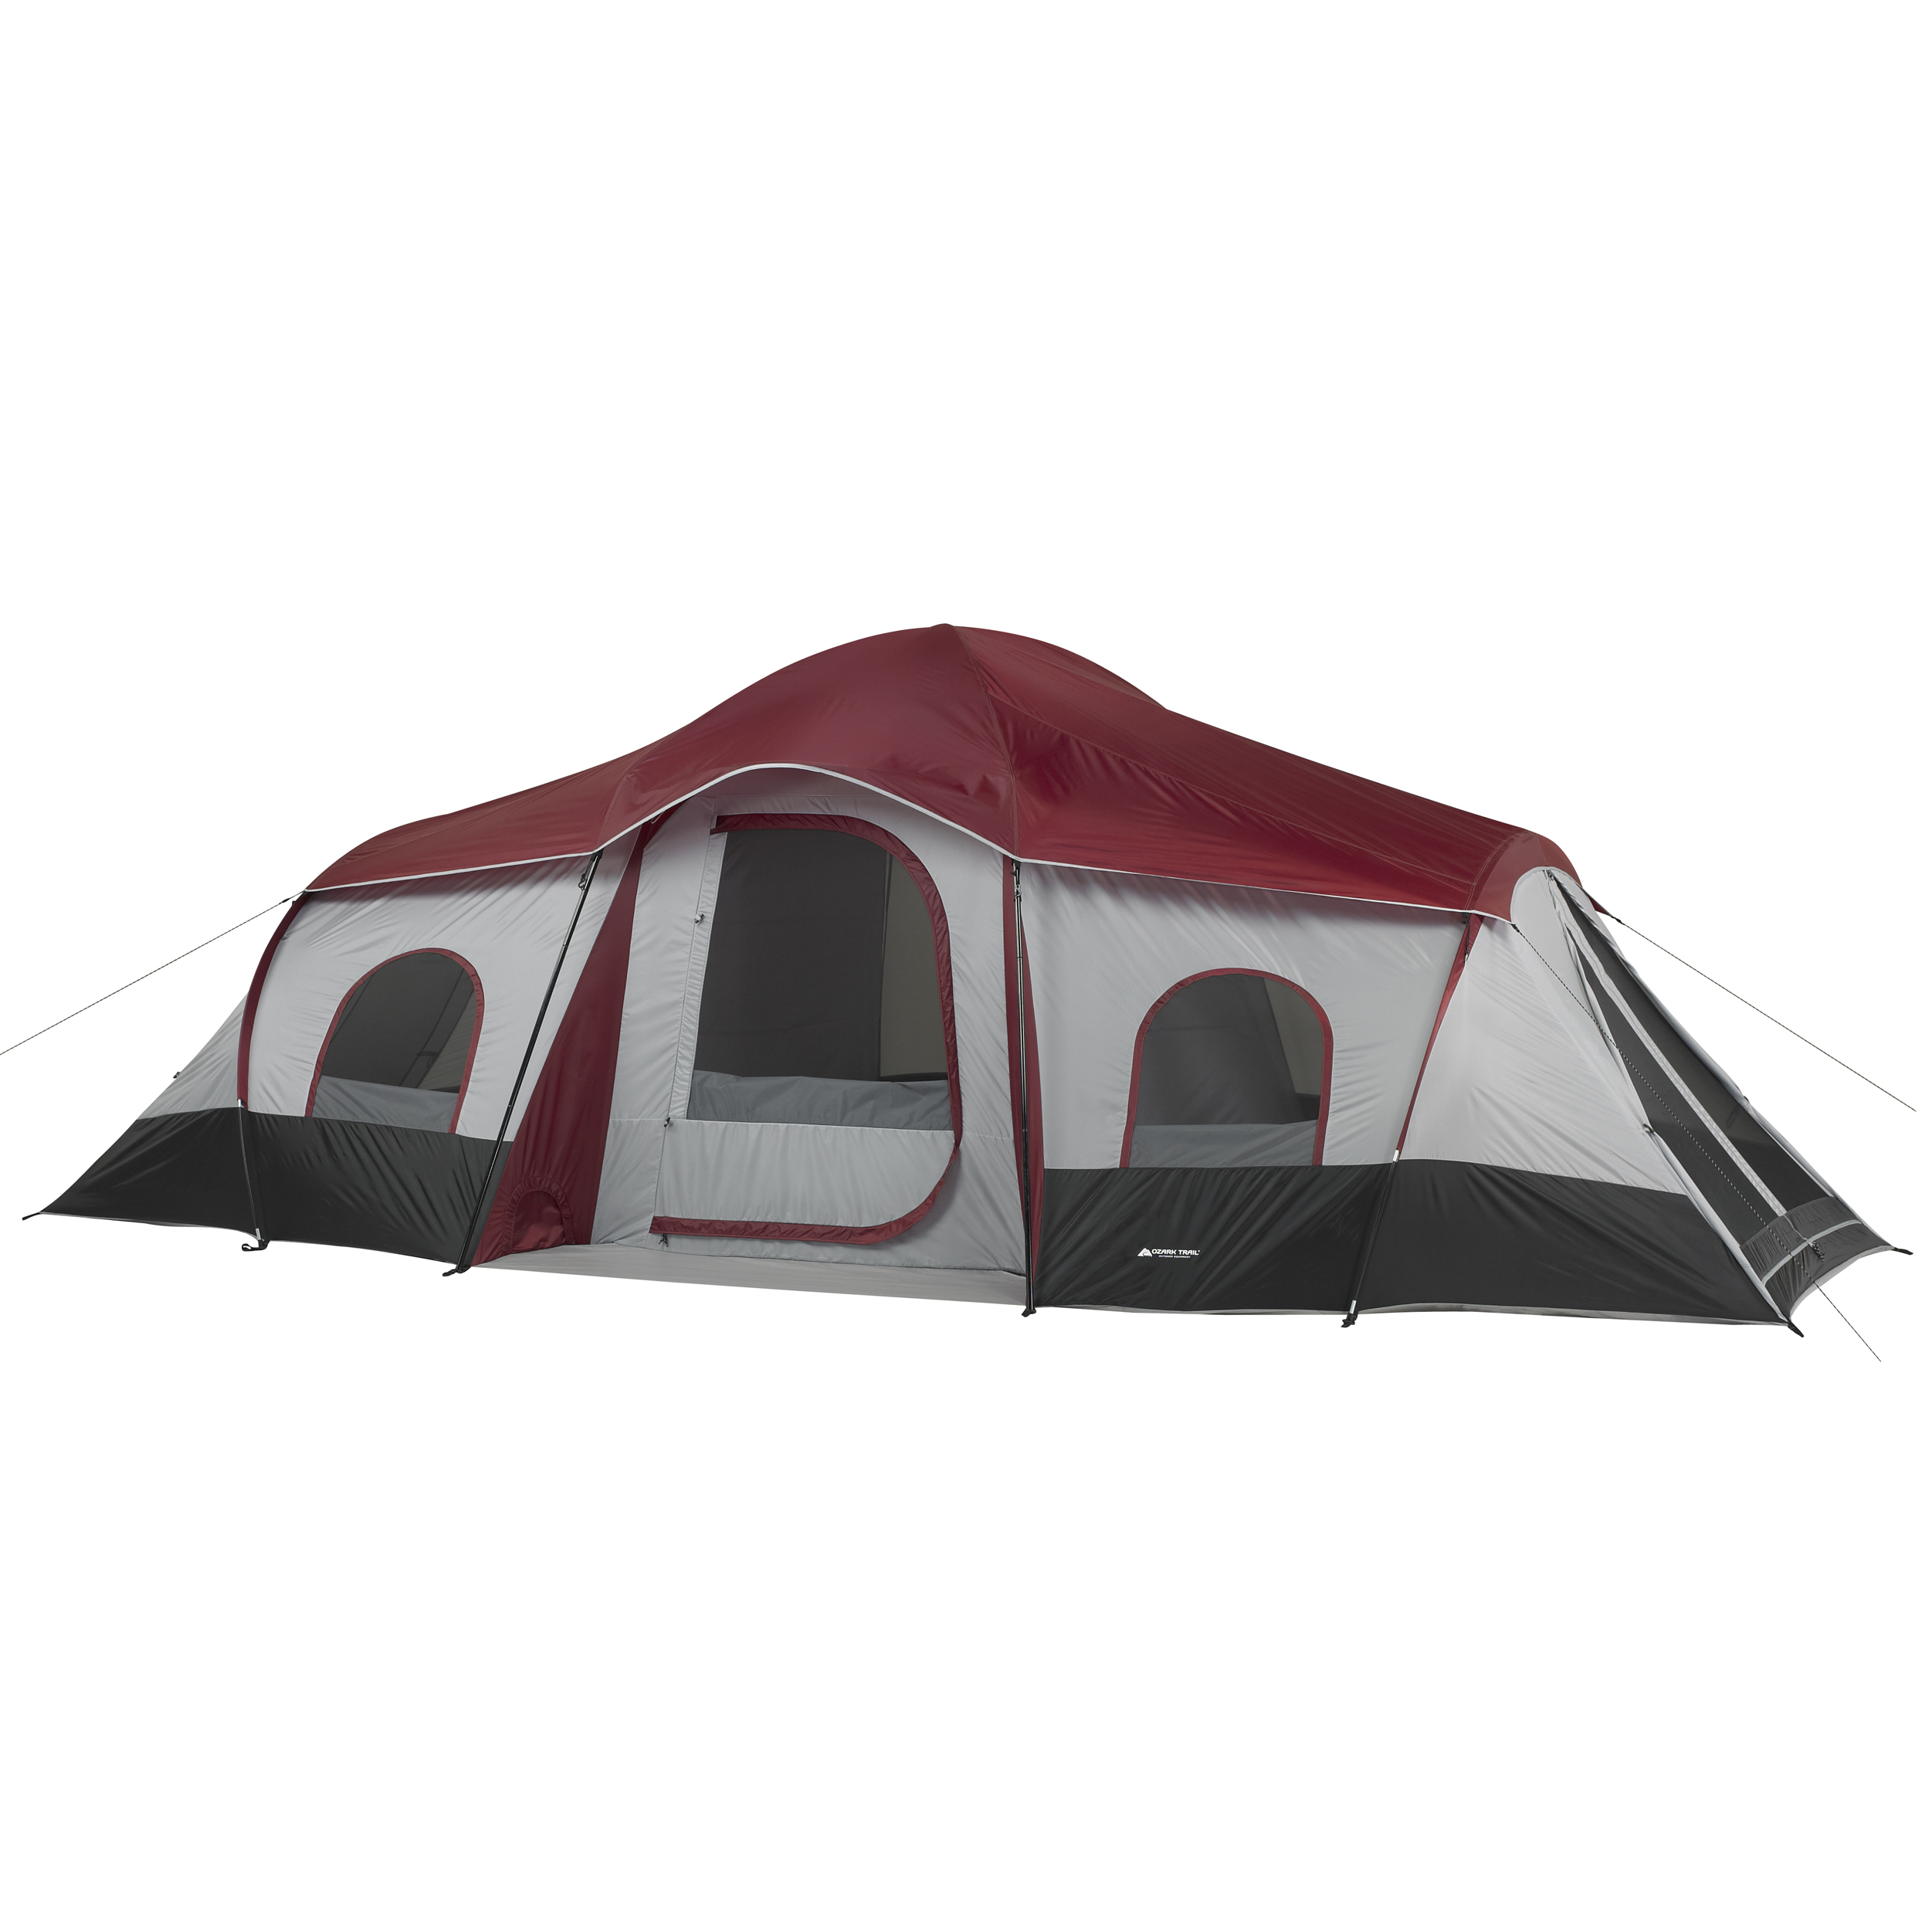 Ozark Trail 10-Person 3-Room Cabin Tent with side entrances by Campex (BD) Limited